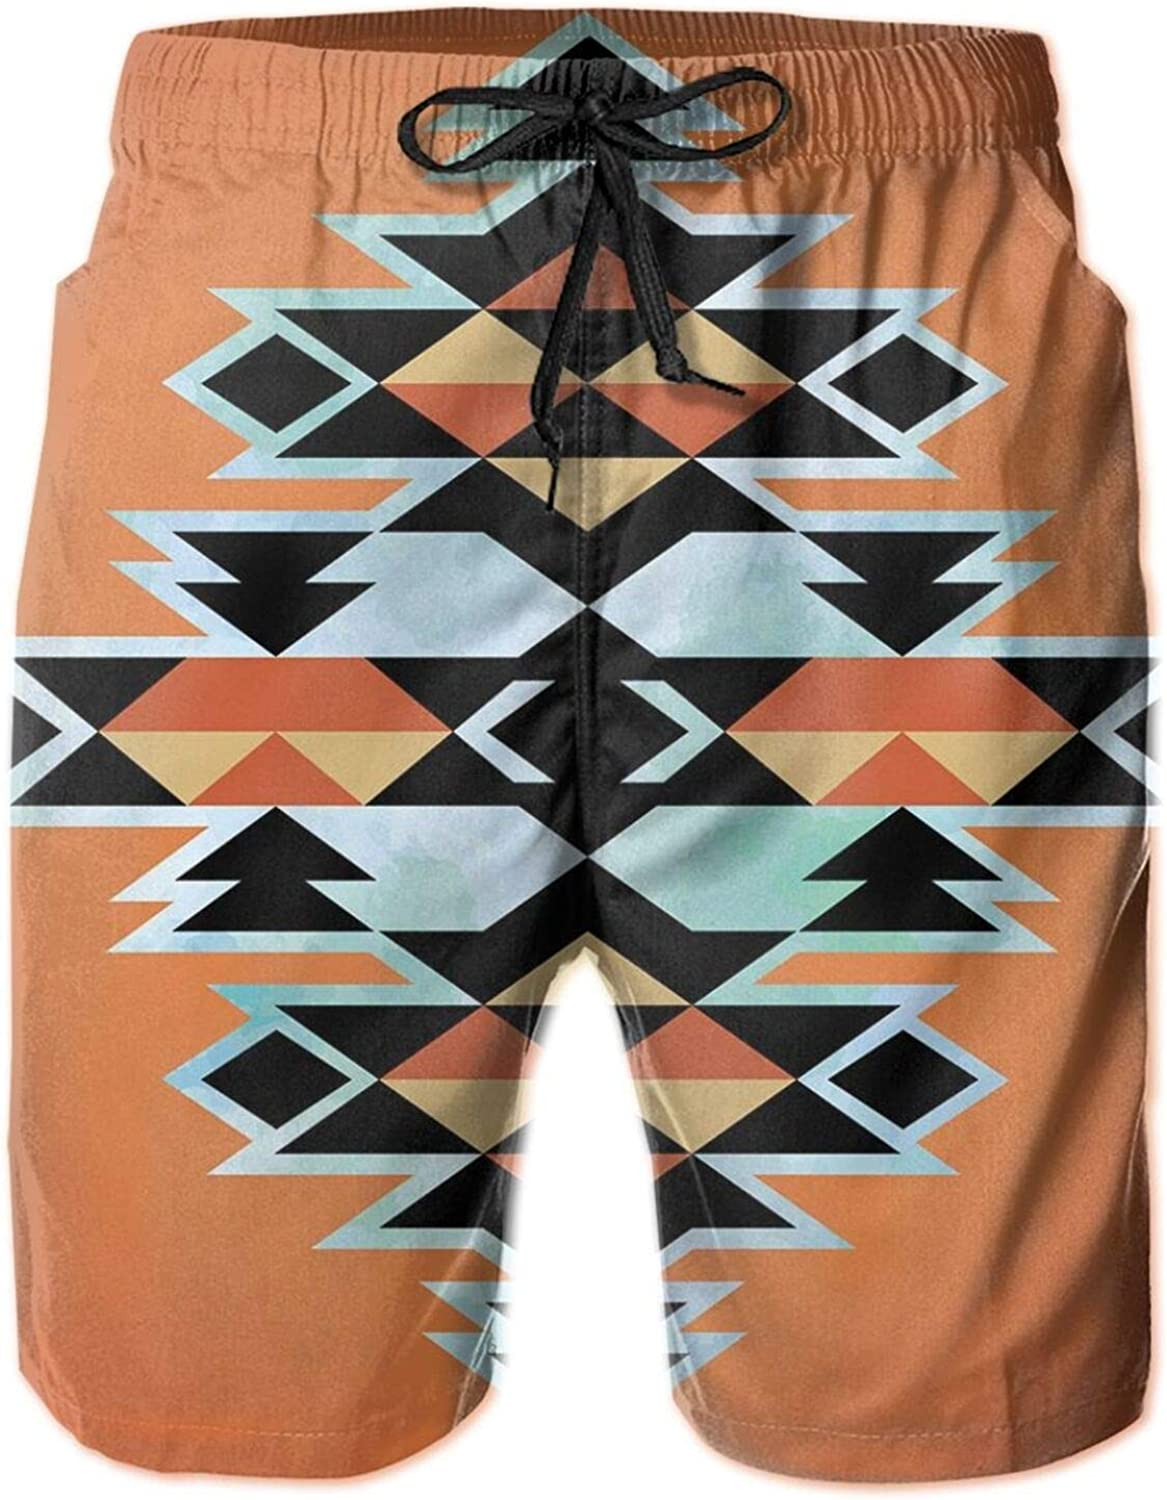 Tribal Aztec Pattern Ethnic Abstract Design Traditional Elements Print Mens Swim Trucks Shorts with Mesh Lining,M